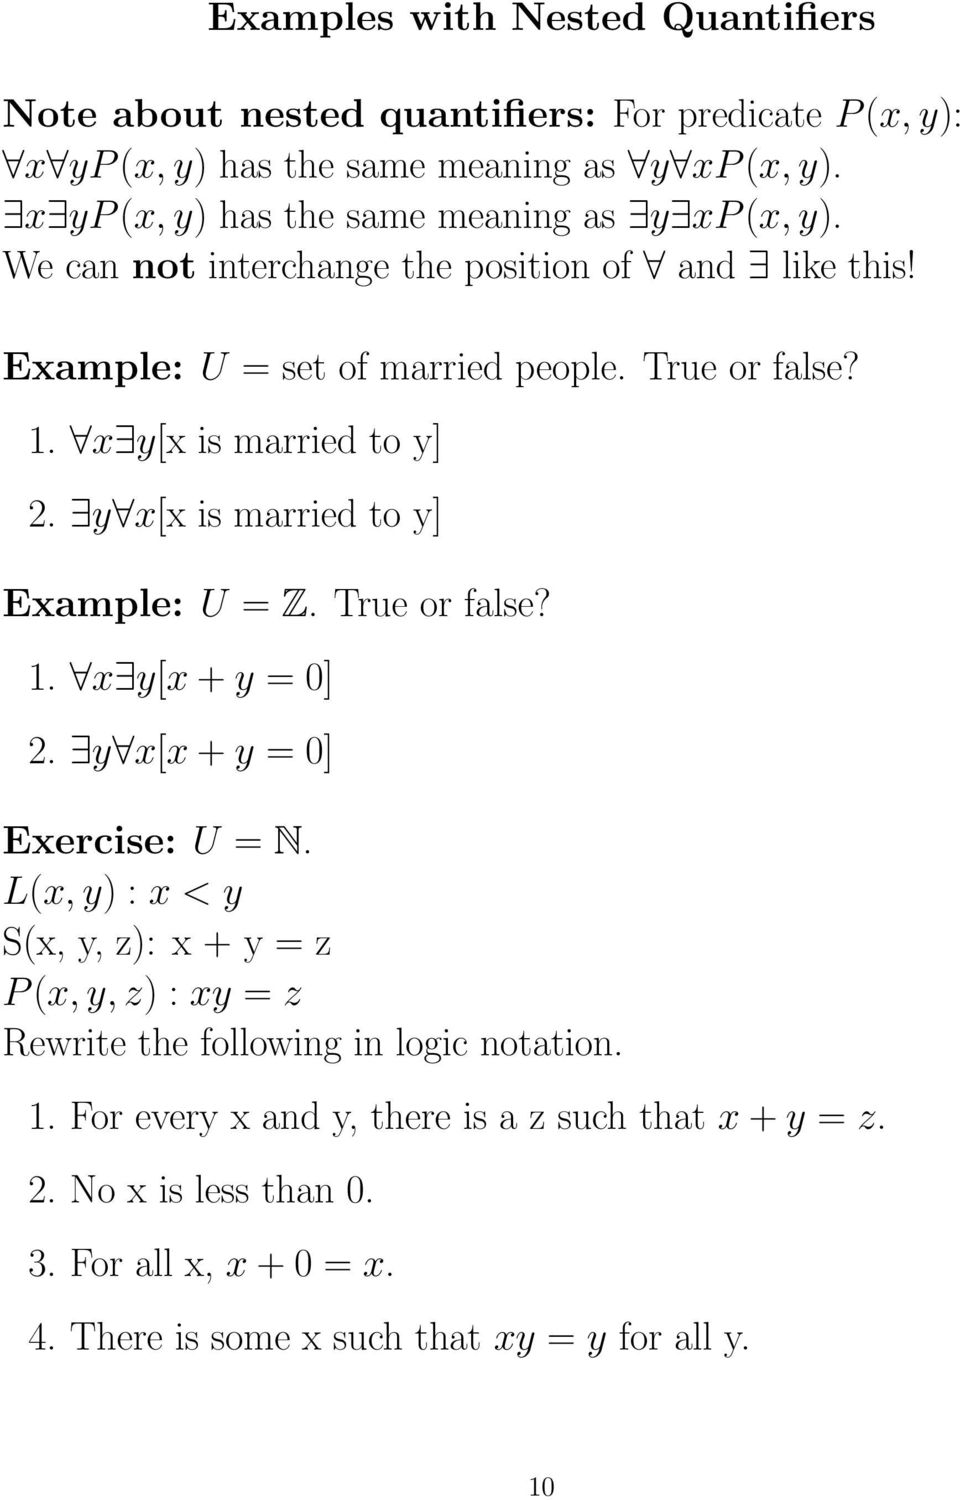 x y[x is married to y] 2. y x[x is married to y] Example: U = Z. True or false? 1. x y[x + y = 0] 2. y x[x + y = 0] Exercise: U = N.